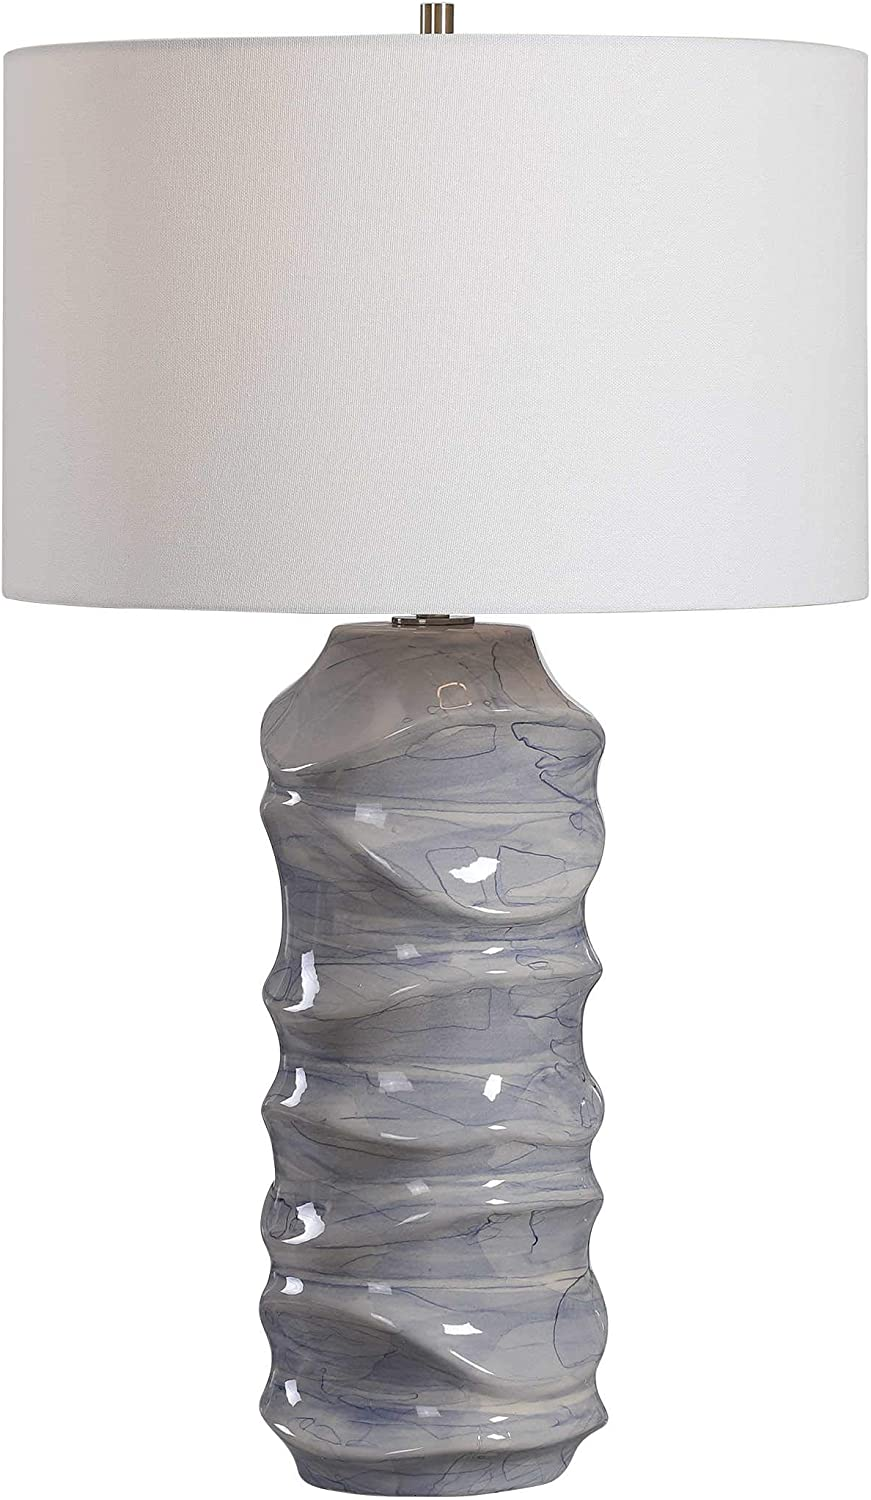 MY SWANKY HOME Luxe Blue White Waves Sculpted Ceramic Table Lamp Wavy Cobalt Drip Glaze Coastal